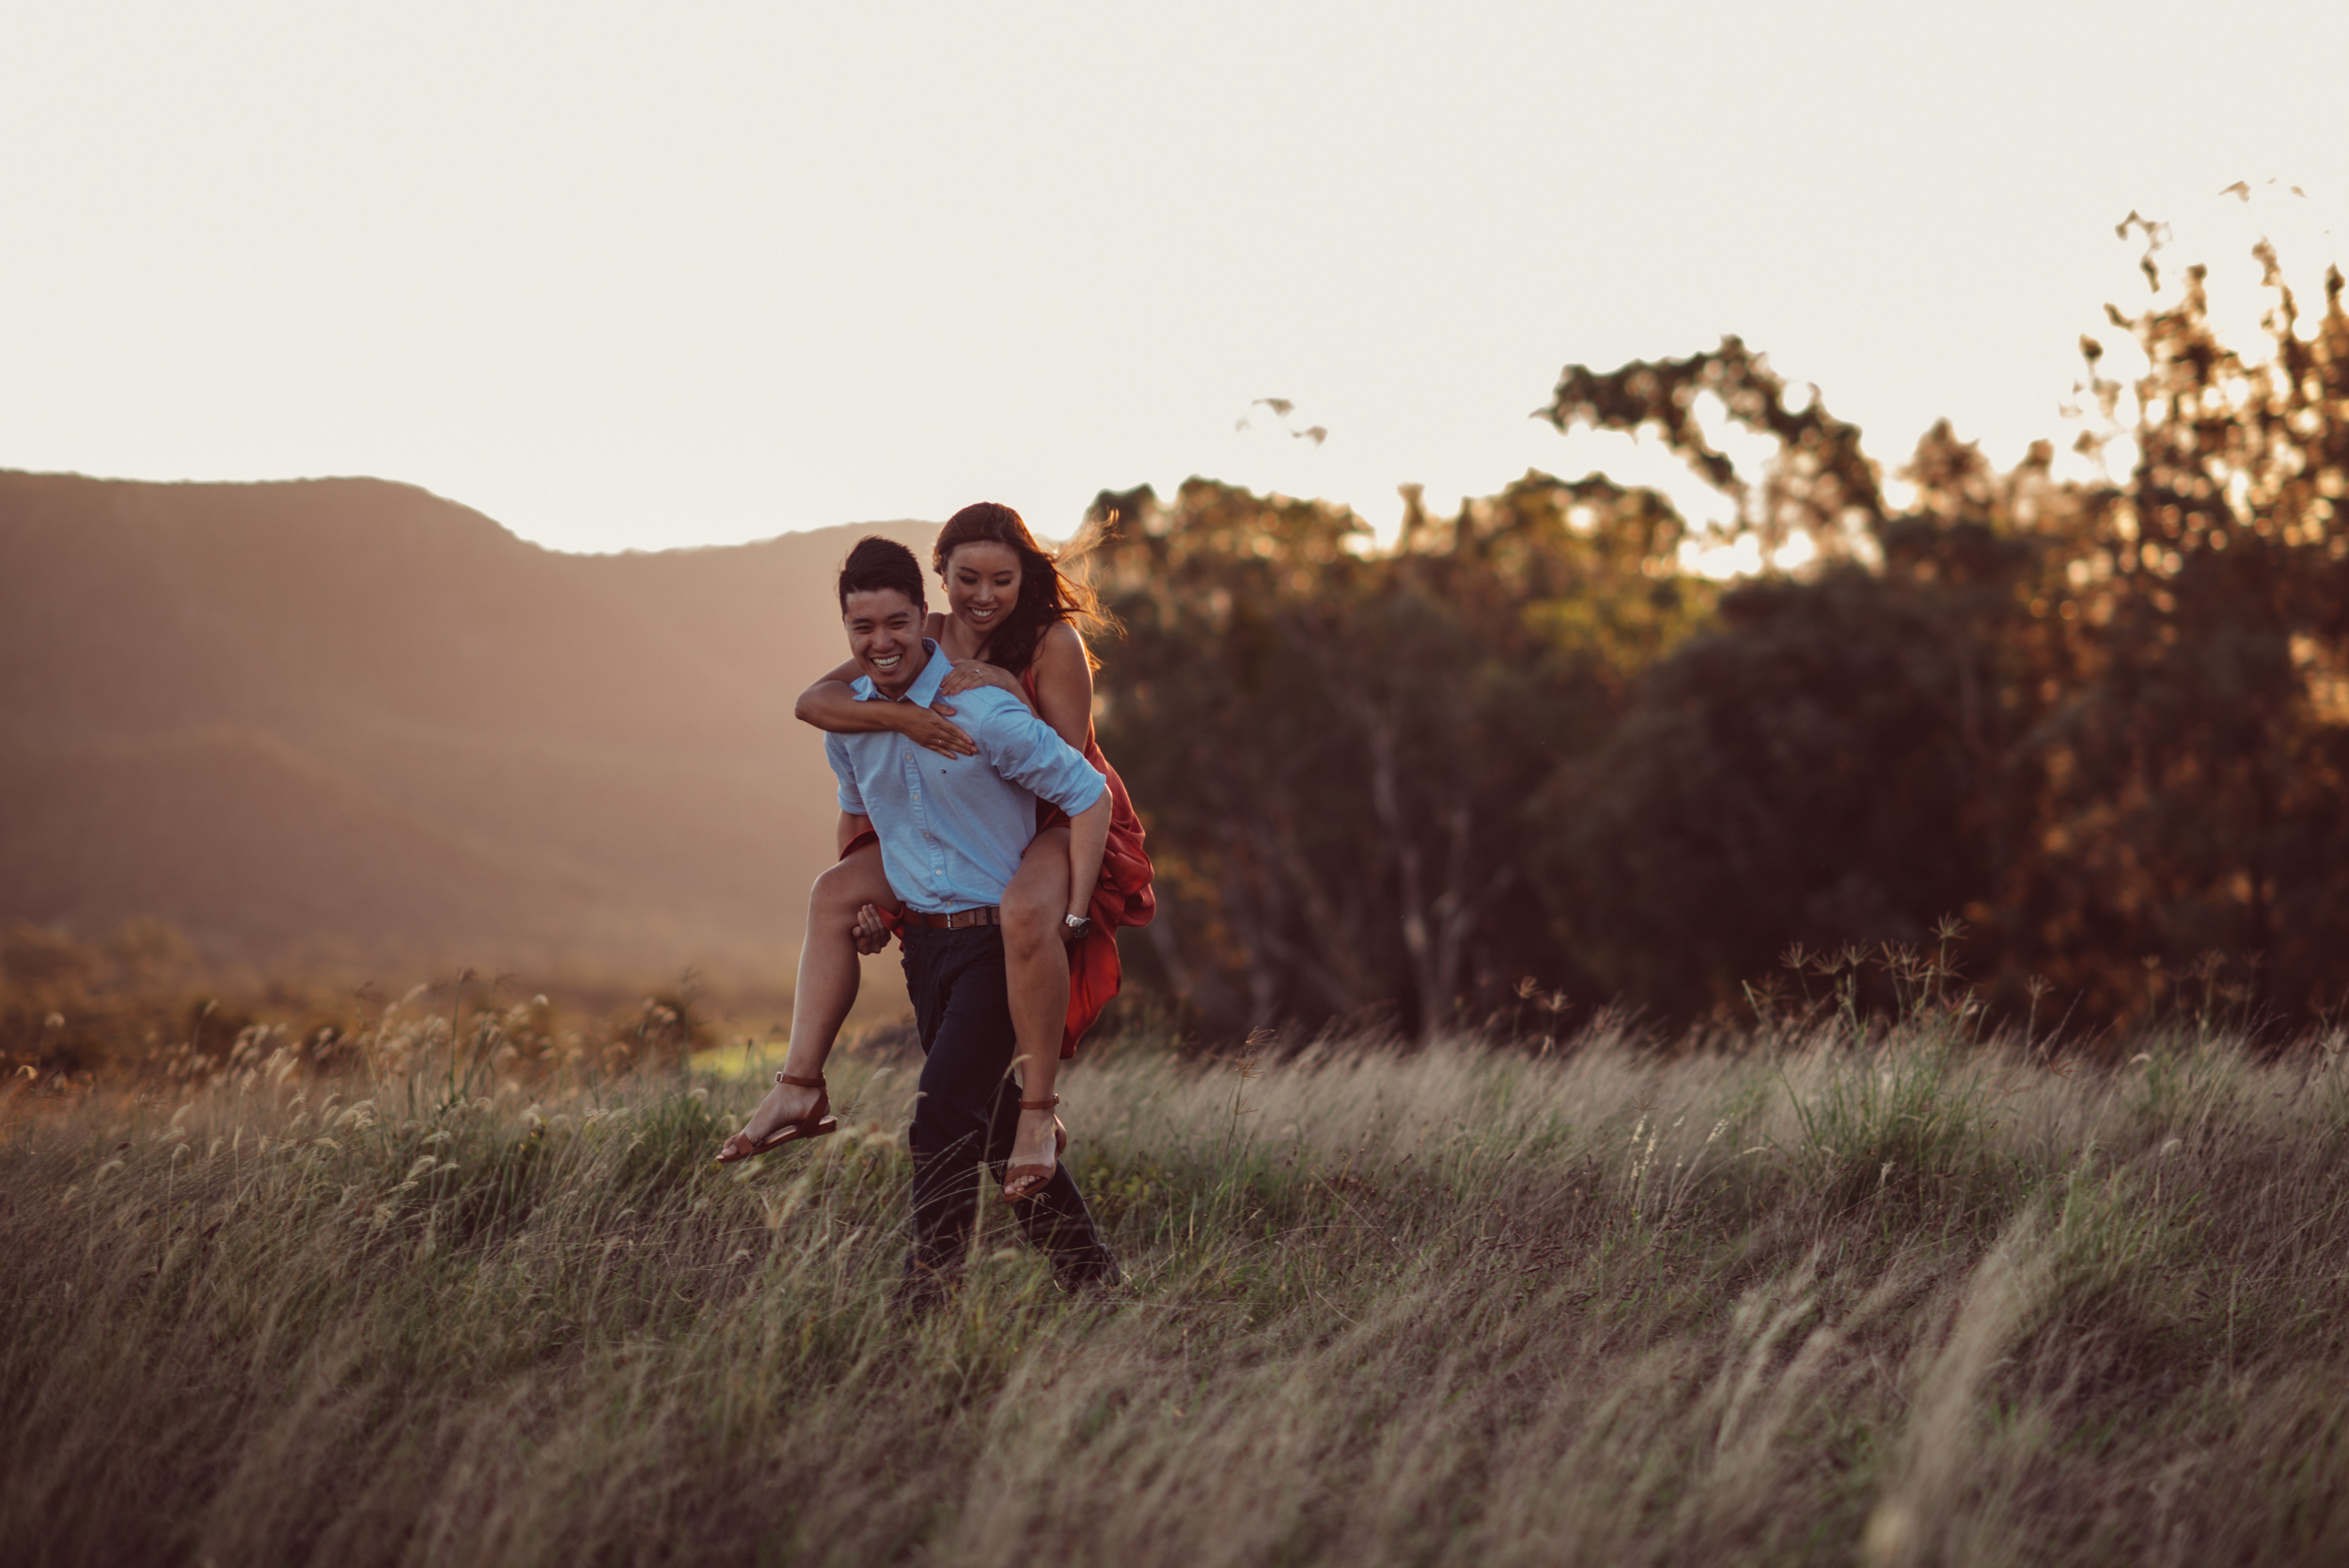 20180310 LOVELENSCAPES PHOTOGRAPHY X THI & ANTHONY • HUNTER VALLEY WINERY ENGAGEMENT PHOTOS • MOBILE SIZE • 11.jpg